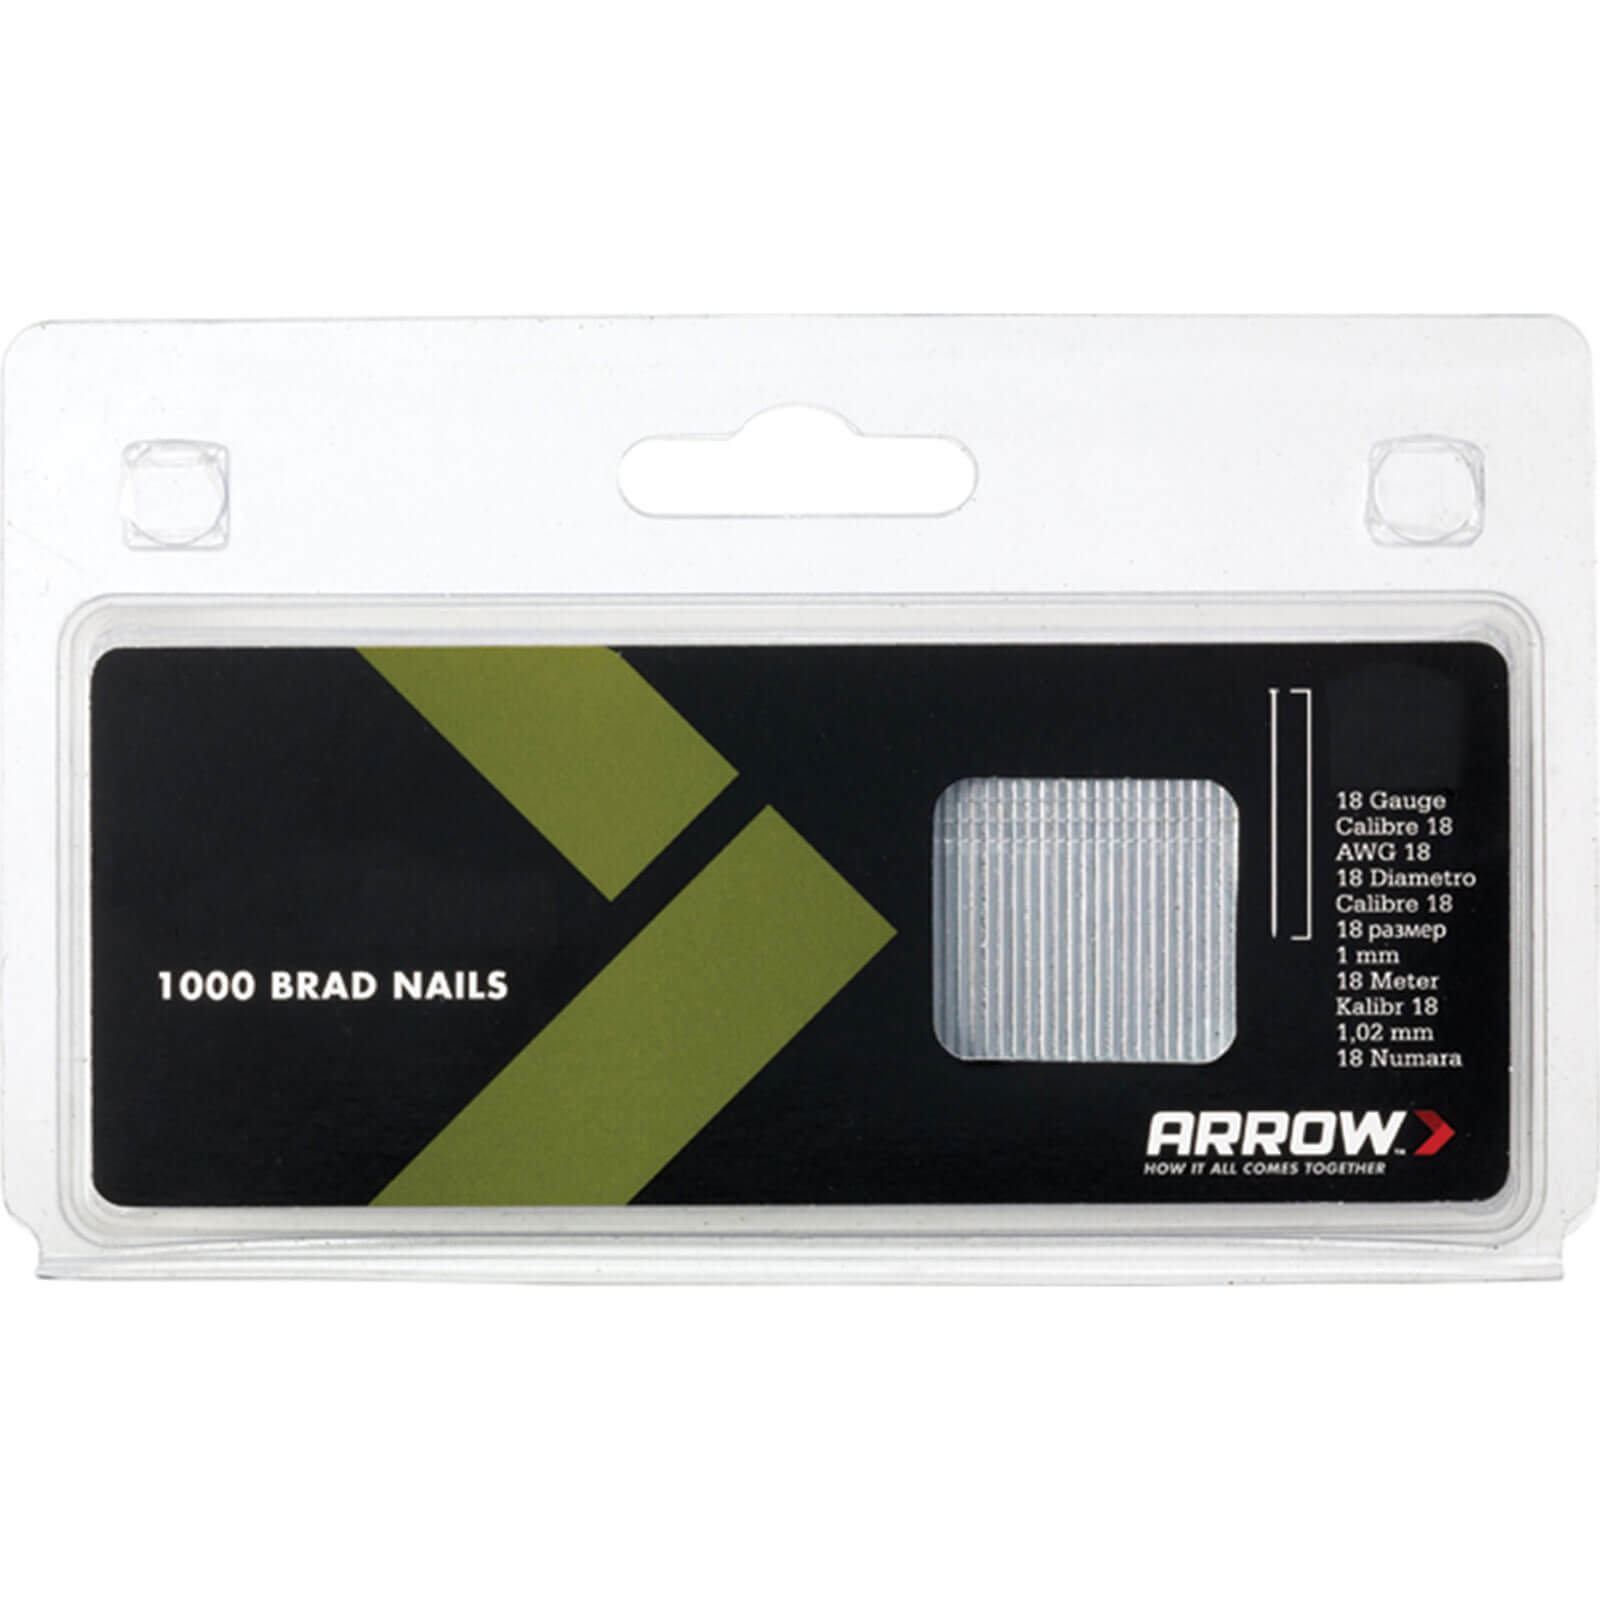 Compare prices for Arrow 18 Gauge Brad Nails 38mm Pack of 1000